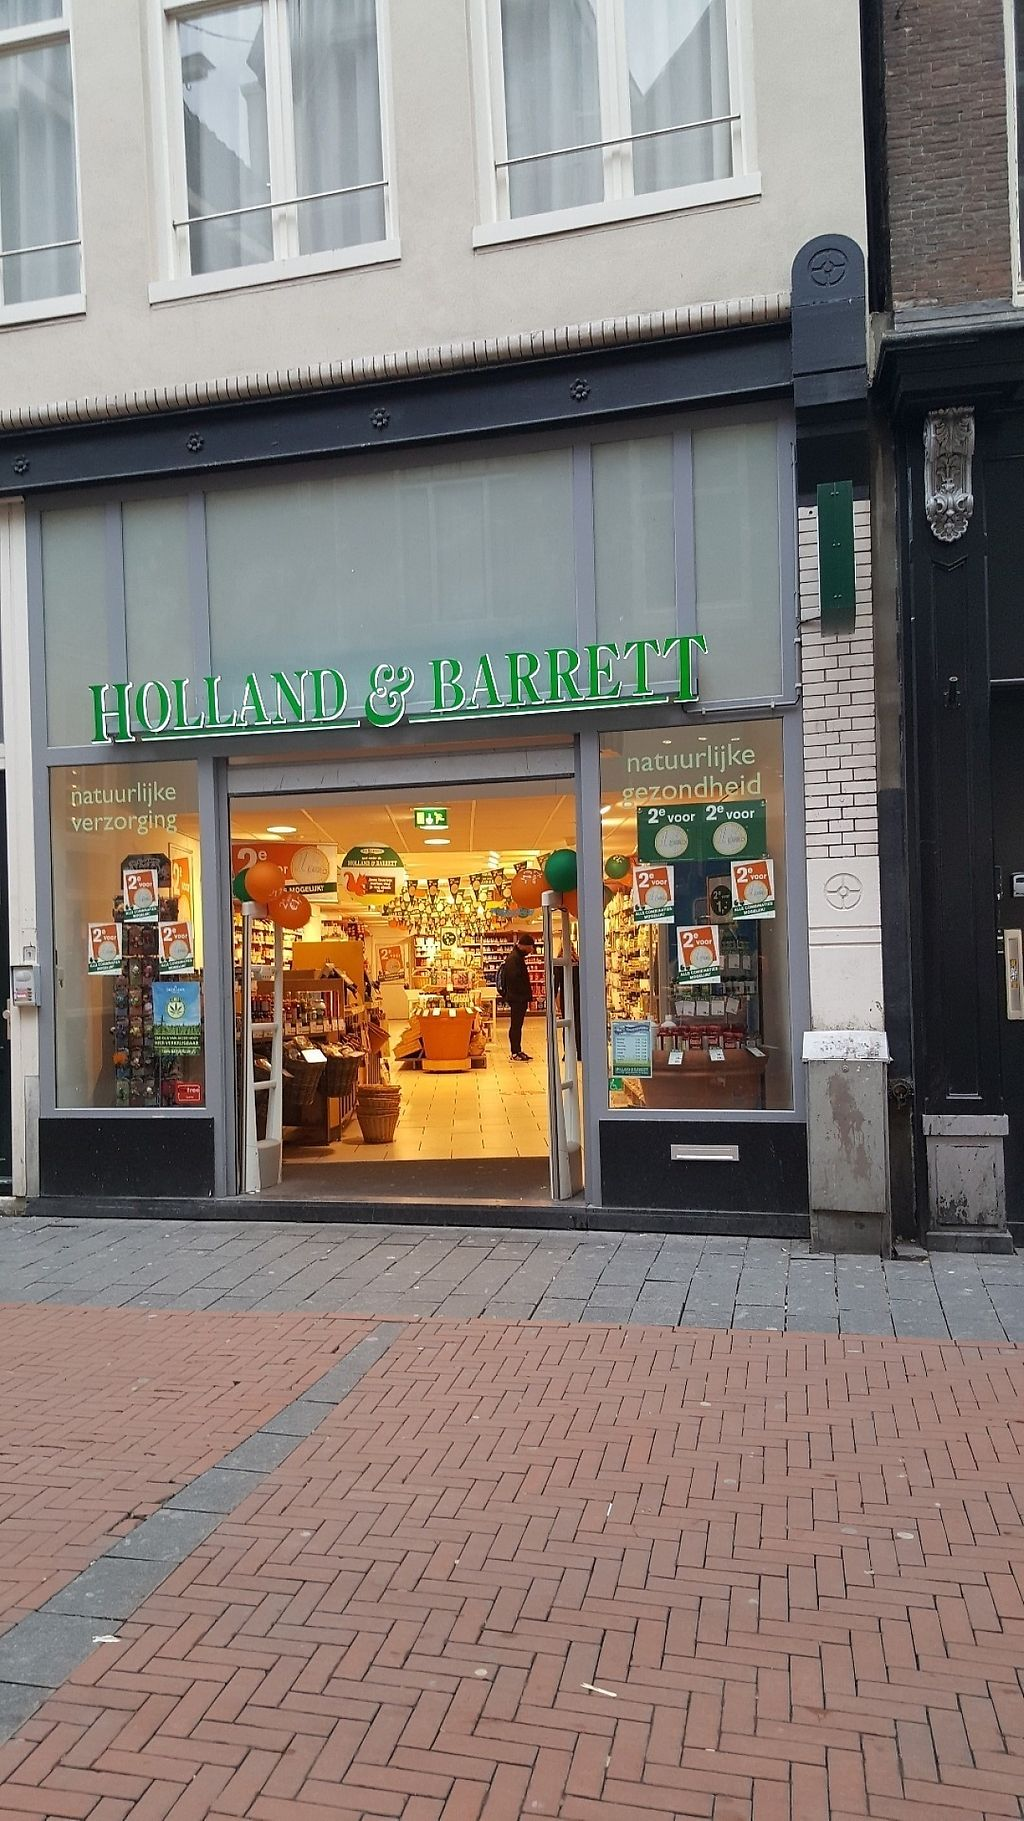 """Photo of Holland and Barrett - Nieuwendijk  by <a href=""""/members/profile/Clare"""">Clare</a> <br/>Store front <br/> February 9, 2017  - <a href='/contact/abuse/image/86929/224617'>Report</a>"""